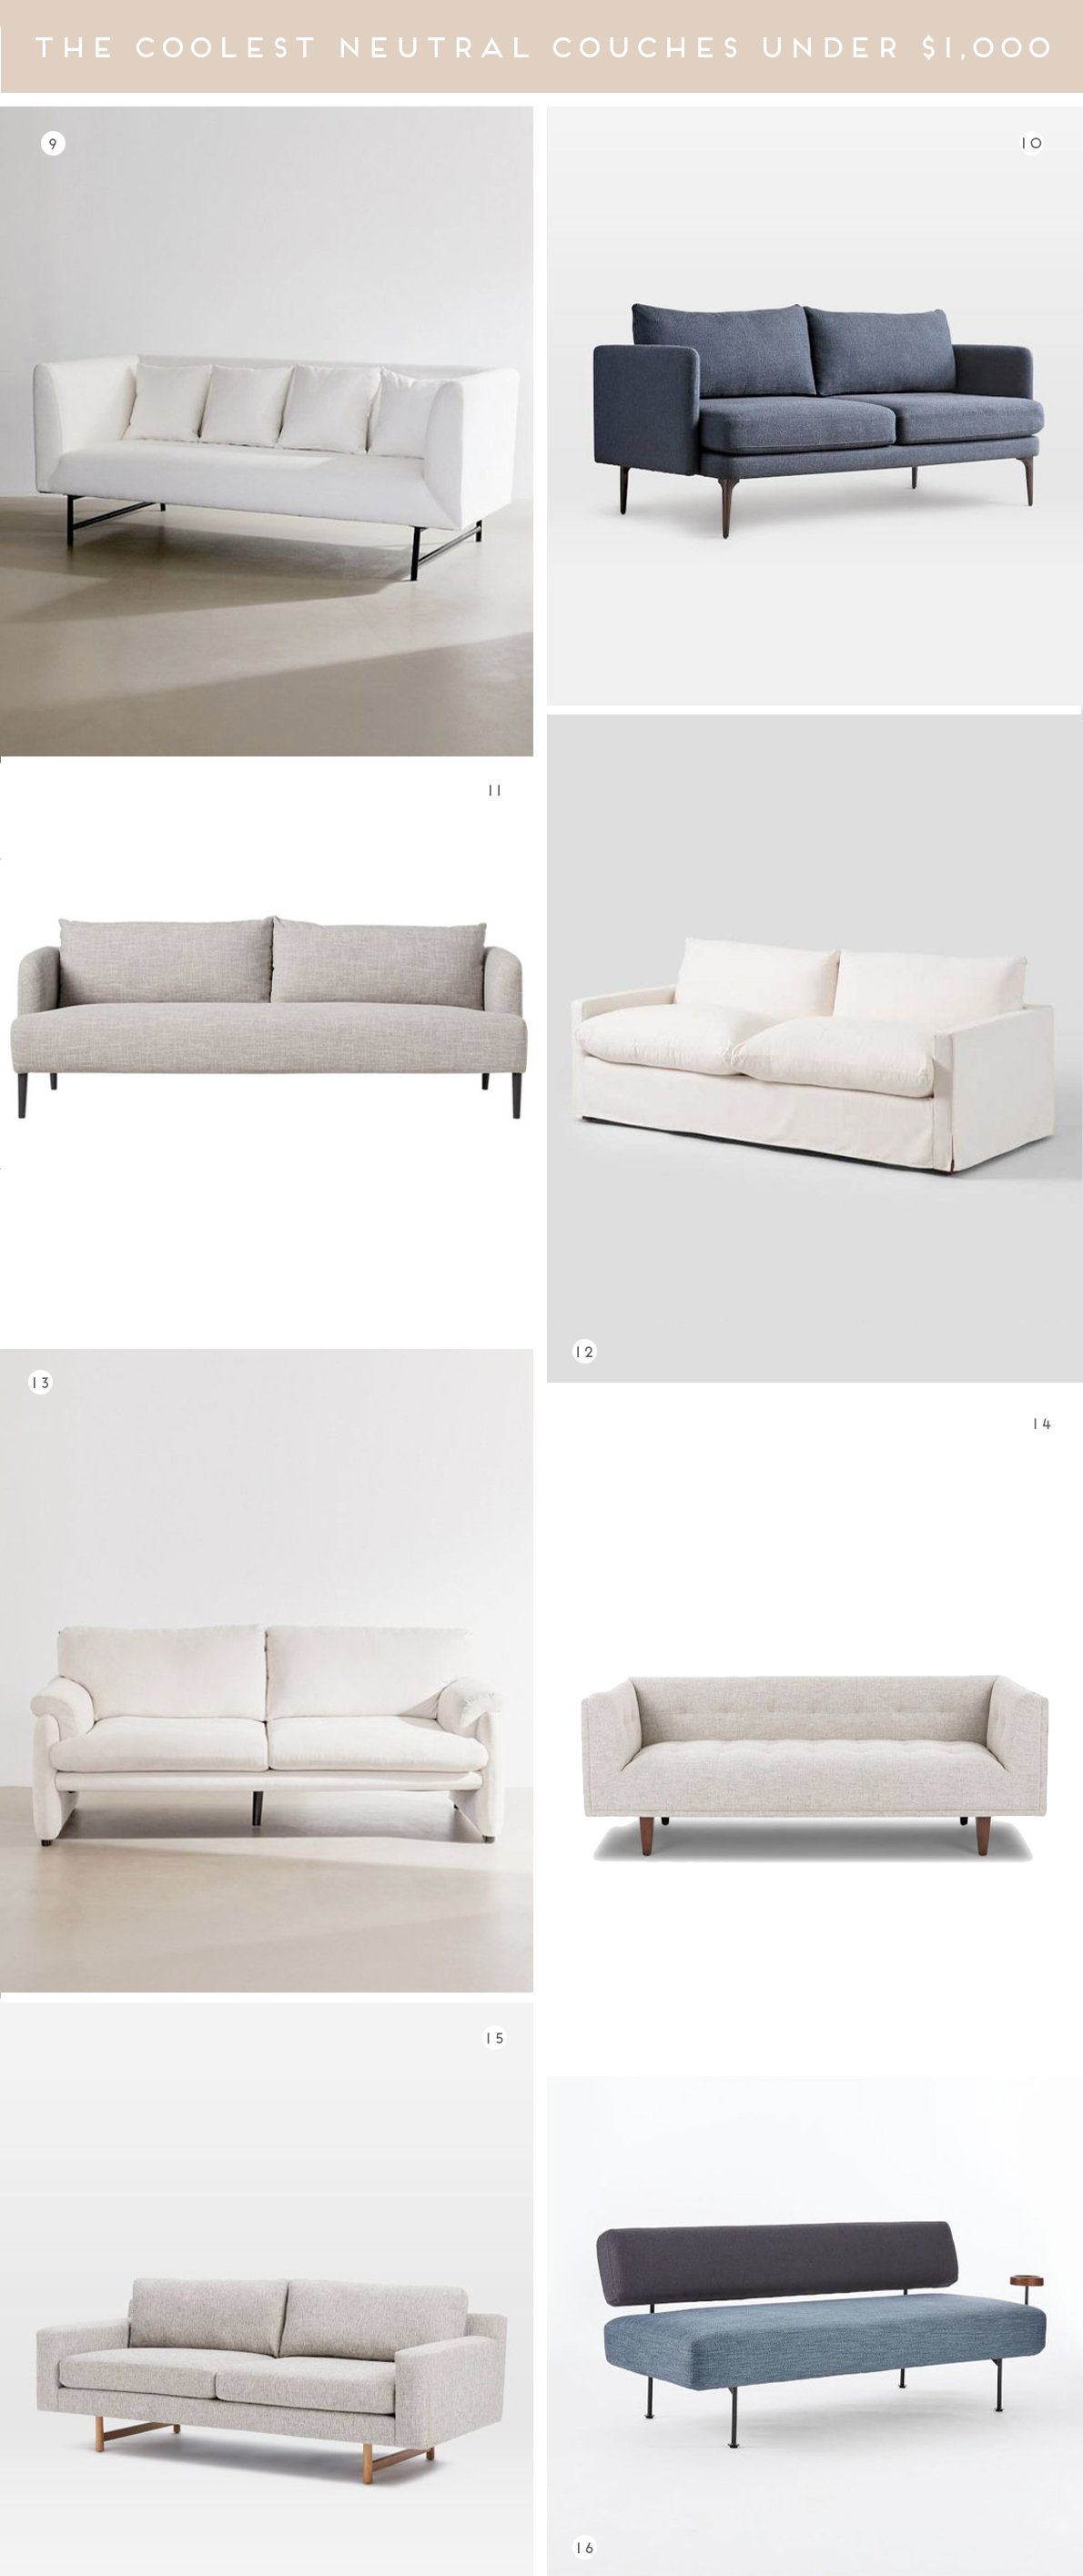 A roundup of the most stylish, modern sofas and coolest couches under $1,000. In white, cream, grey, and blue.